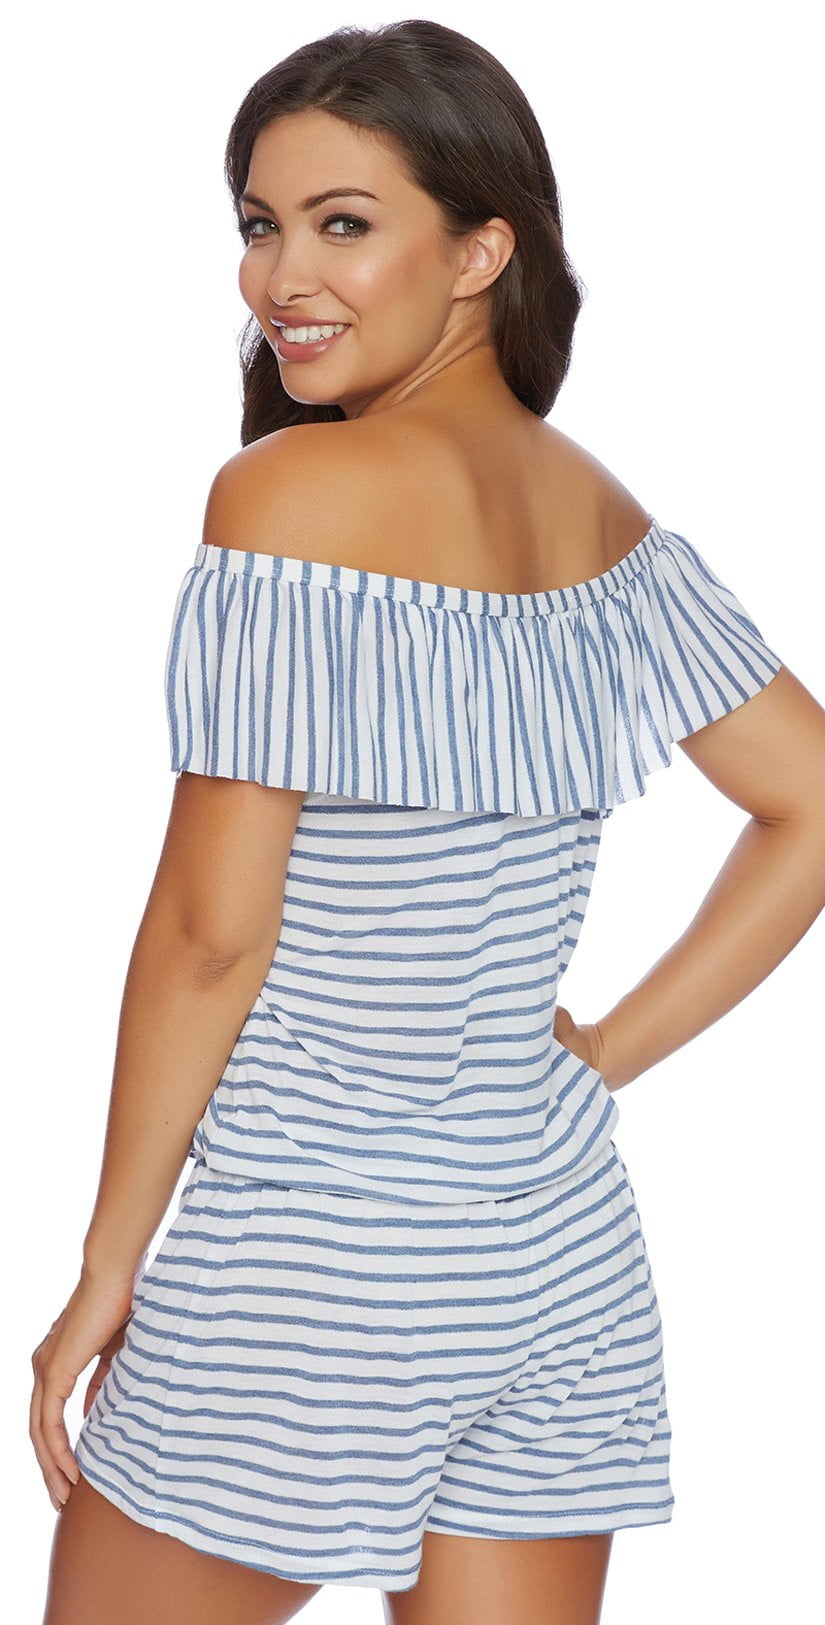 Splendid Chambray All Day Off the Shoulder Romper SP48777-BLU: